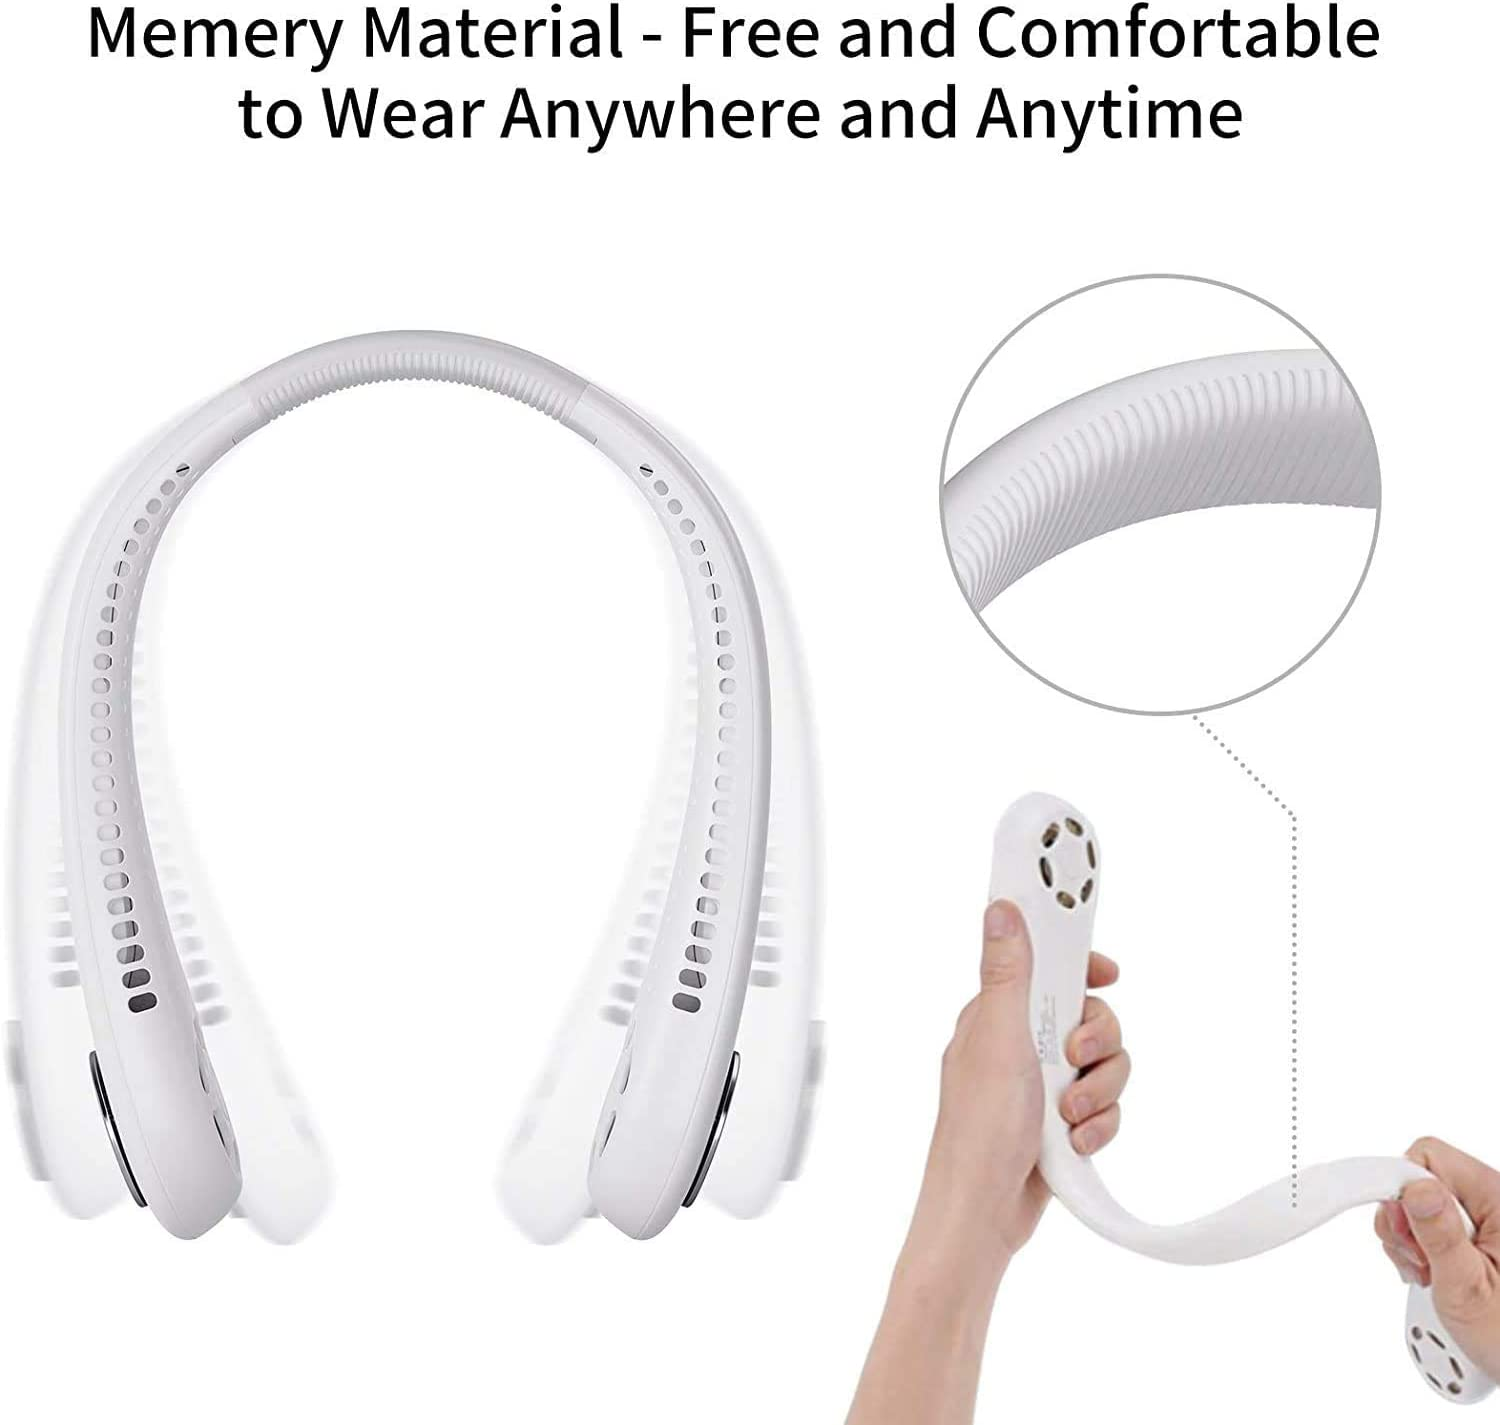 Hand Free Personal Fan - Rechargeable Portable Mini USB Battery Neck Fan,3 Level Air Flow - Small Dual Effect Cooling Neckband Fan for Home, Office,Sports,Working,Travel,Outdoor